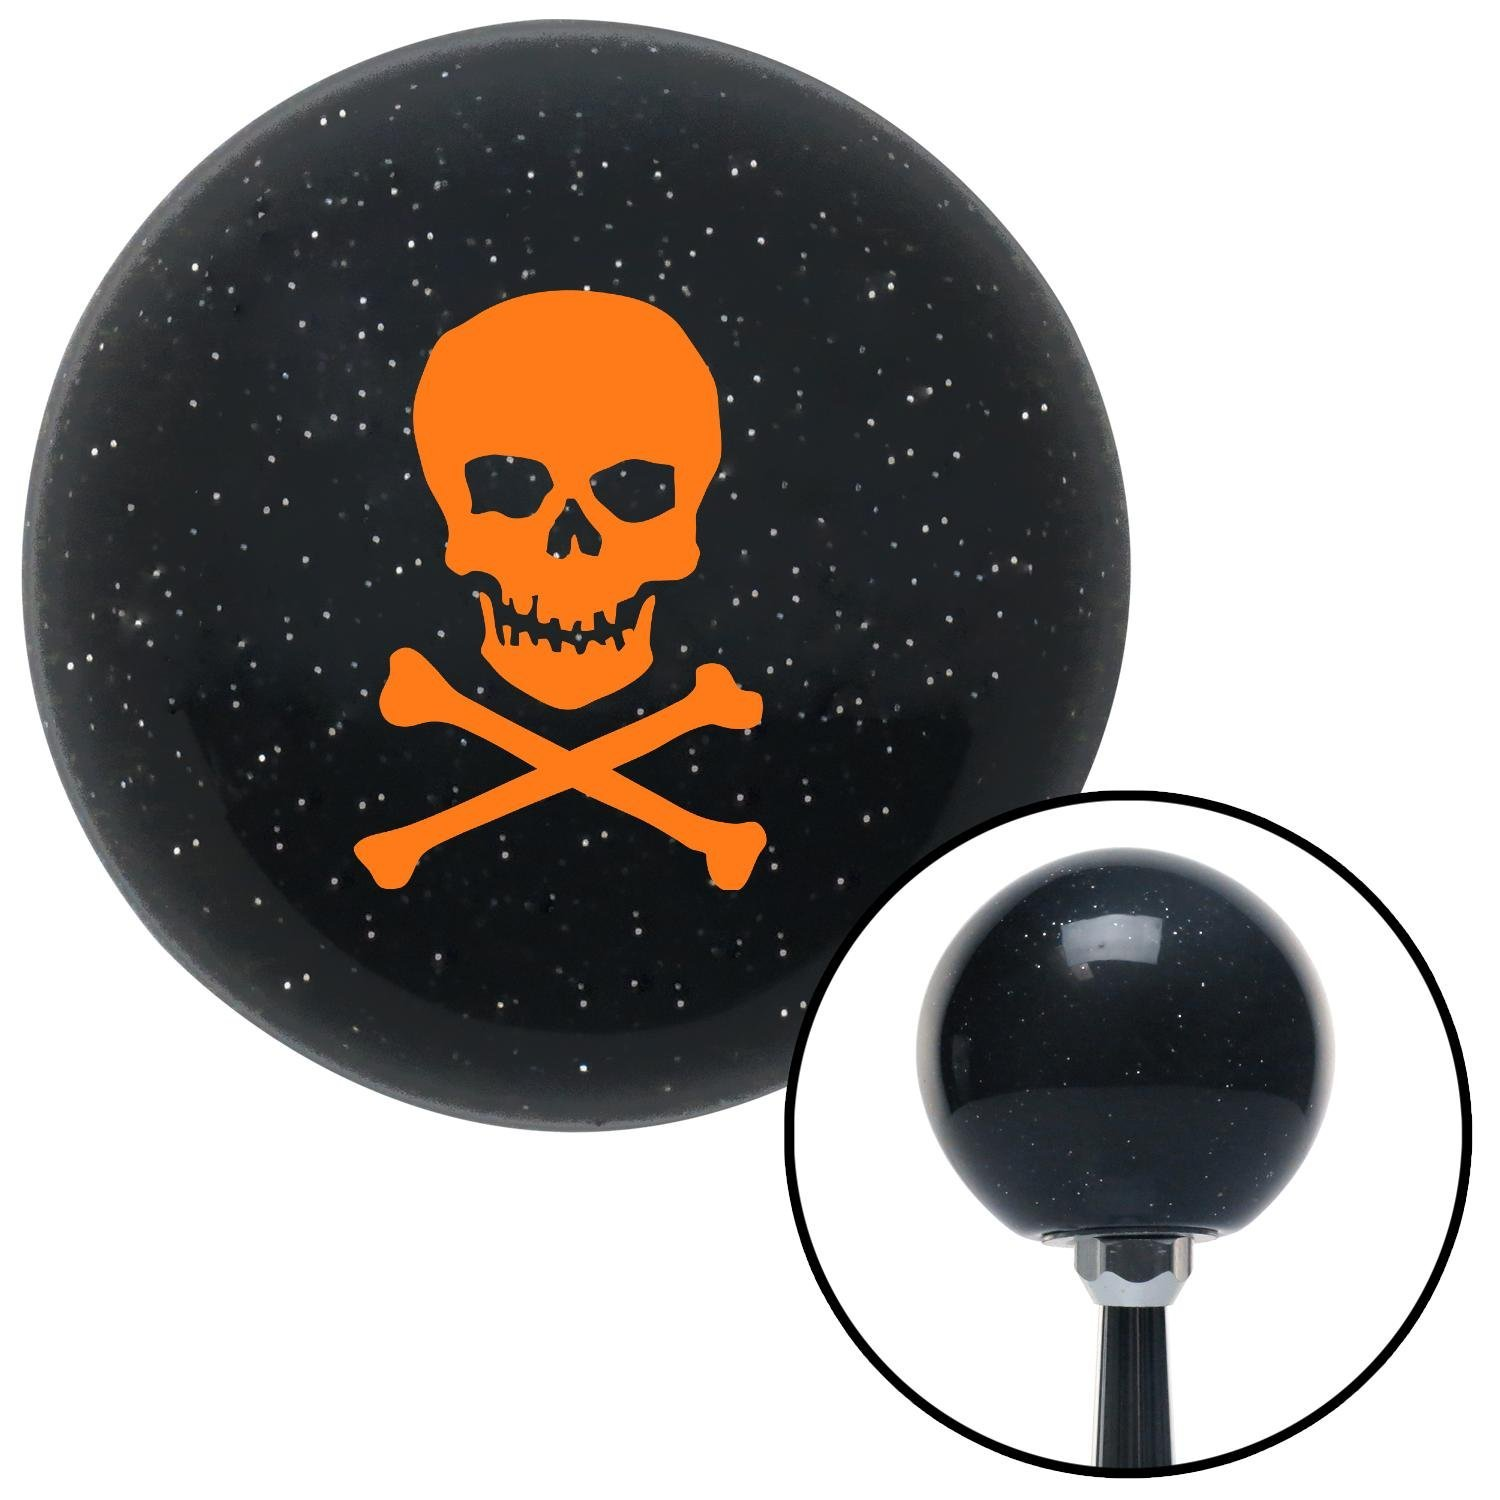 American Shifter 73813 Black Metal Flake Shift Knob with M16 x 1.5 Insert Orange Skull and Bones